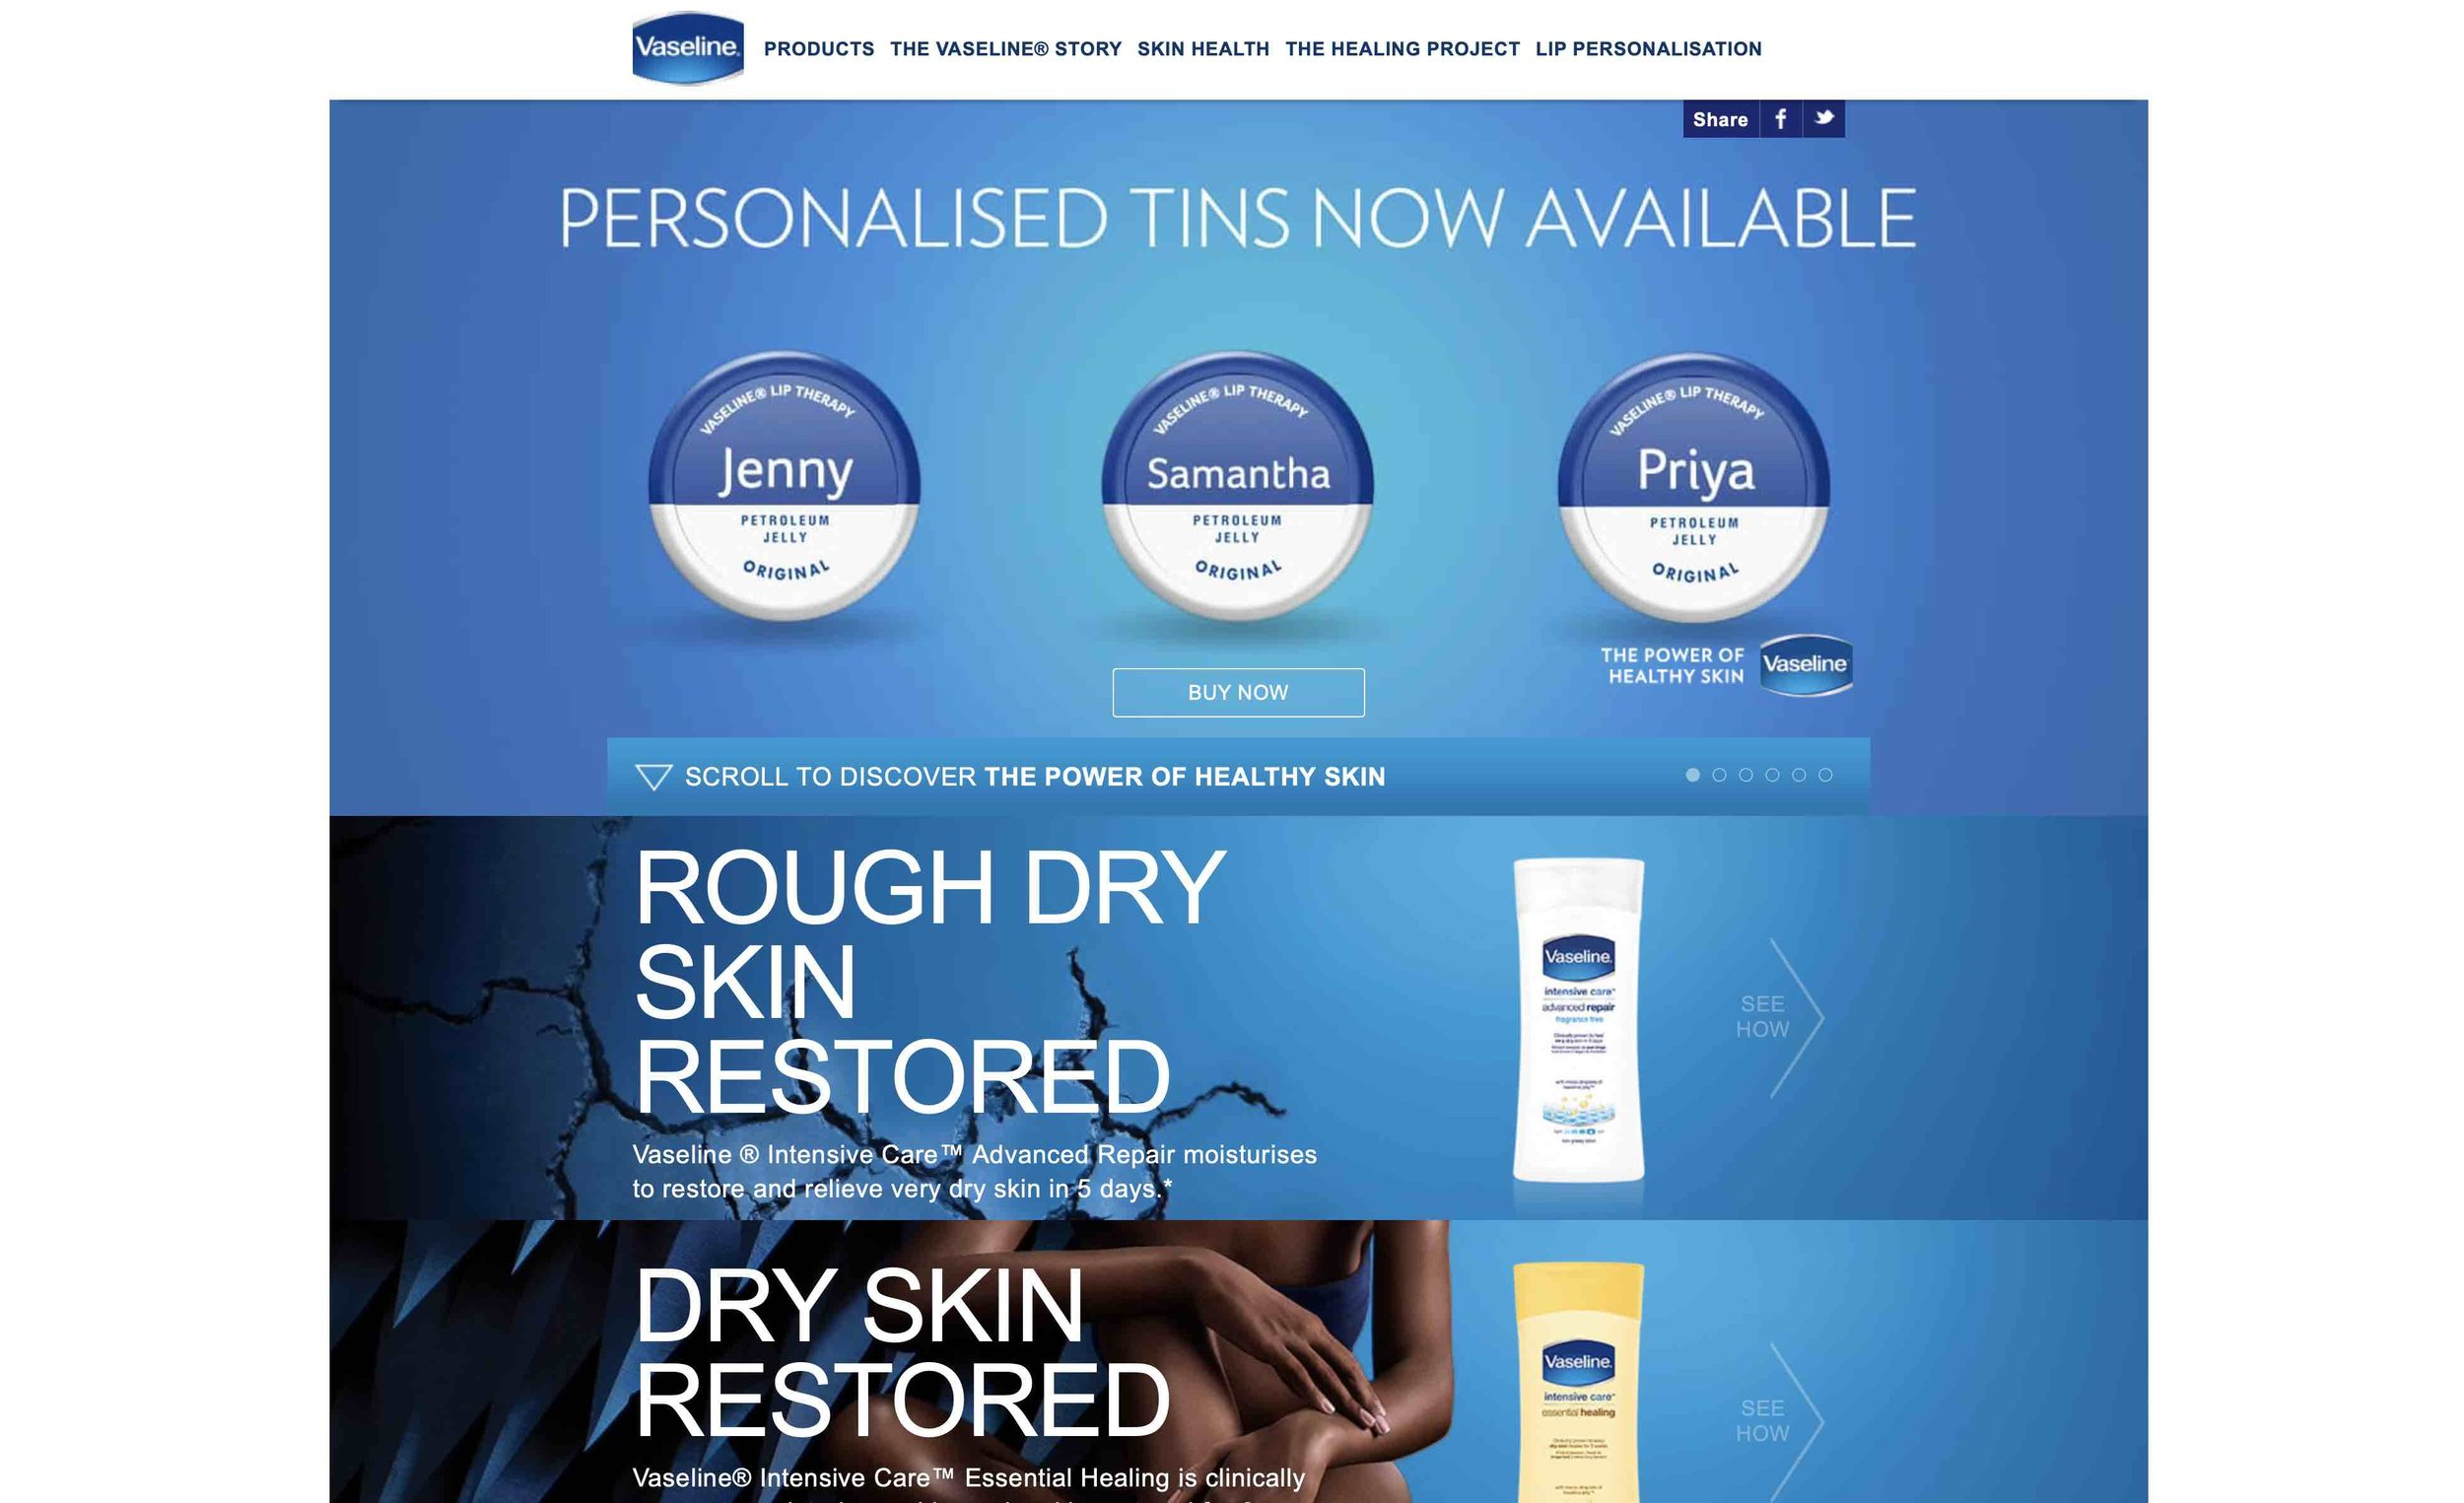 VASELINE's Website → -